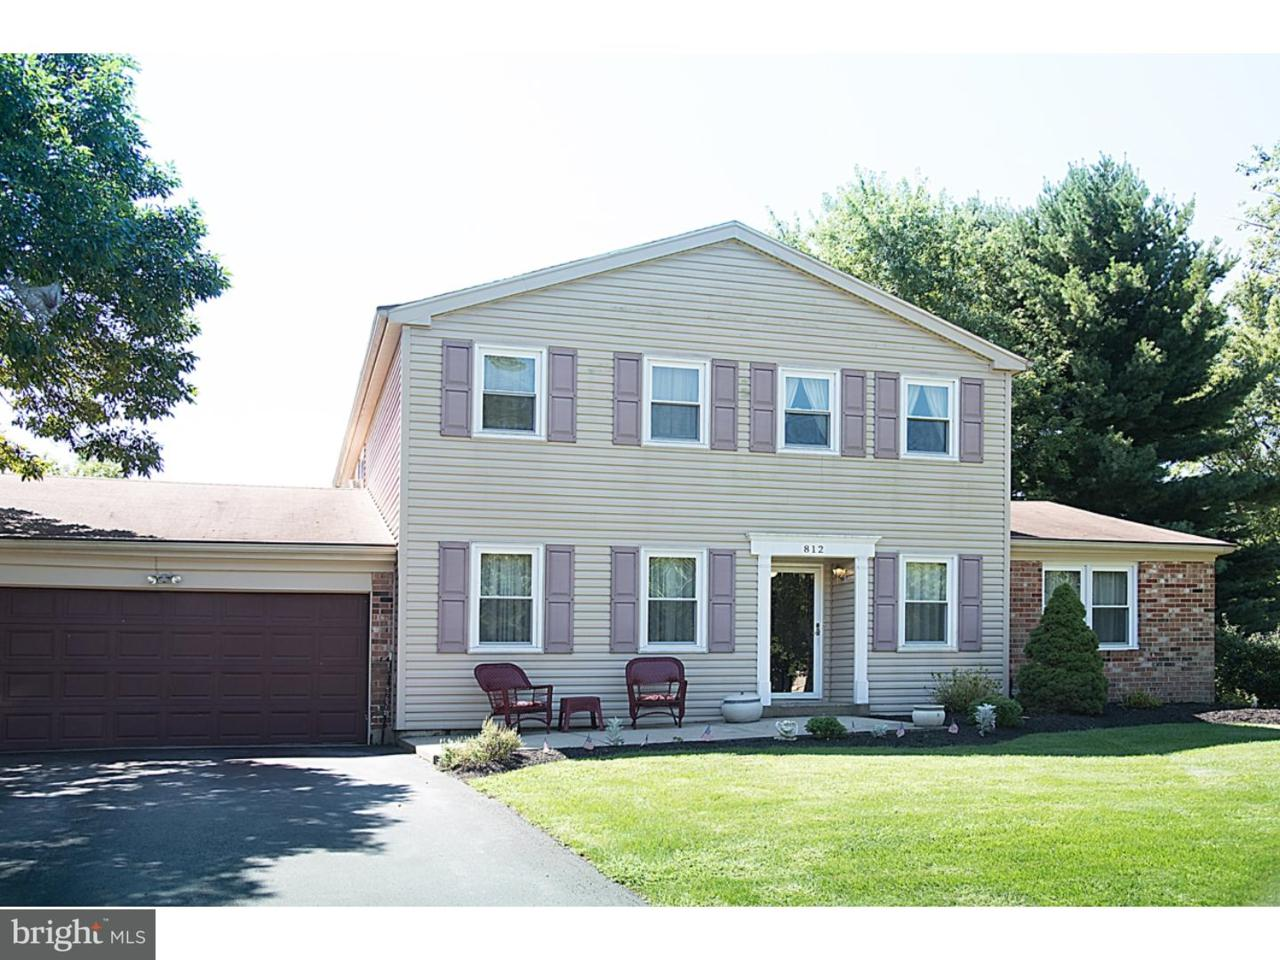 812 Mourning Dove Road - Photo 1